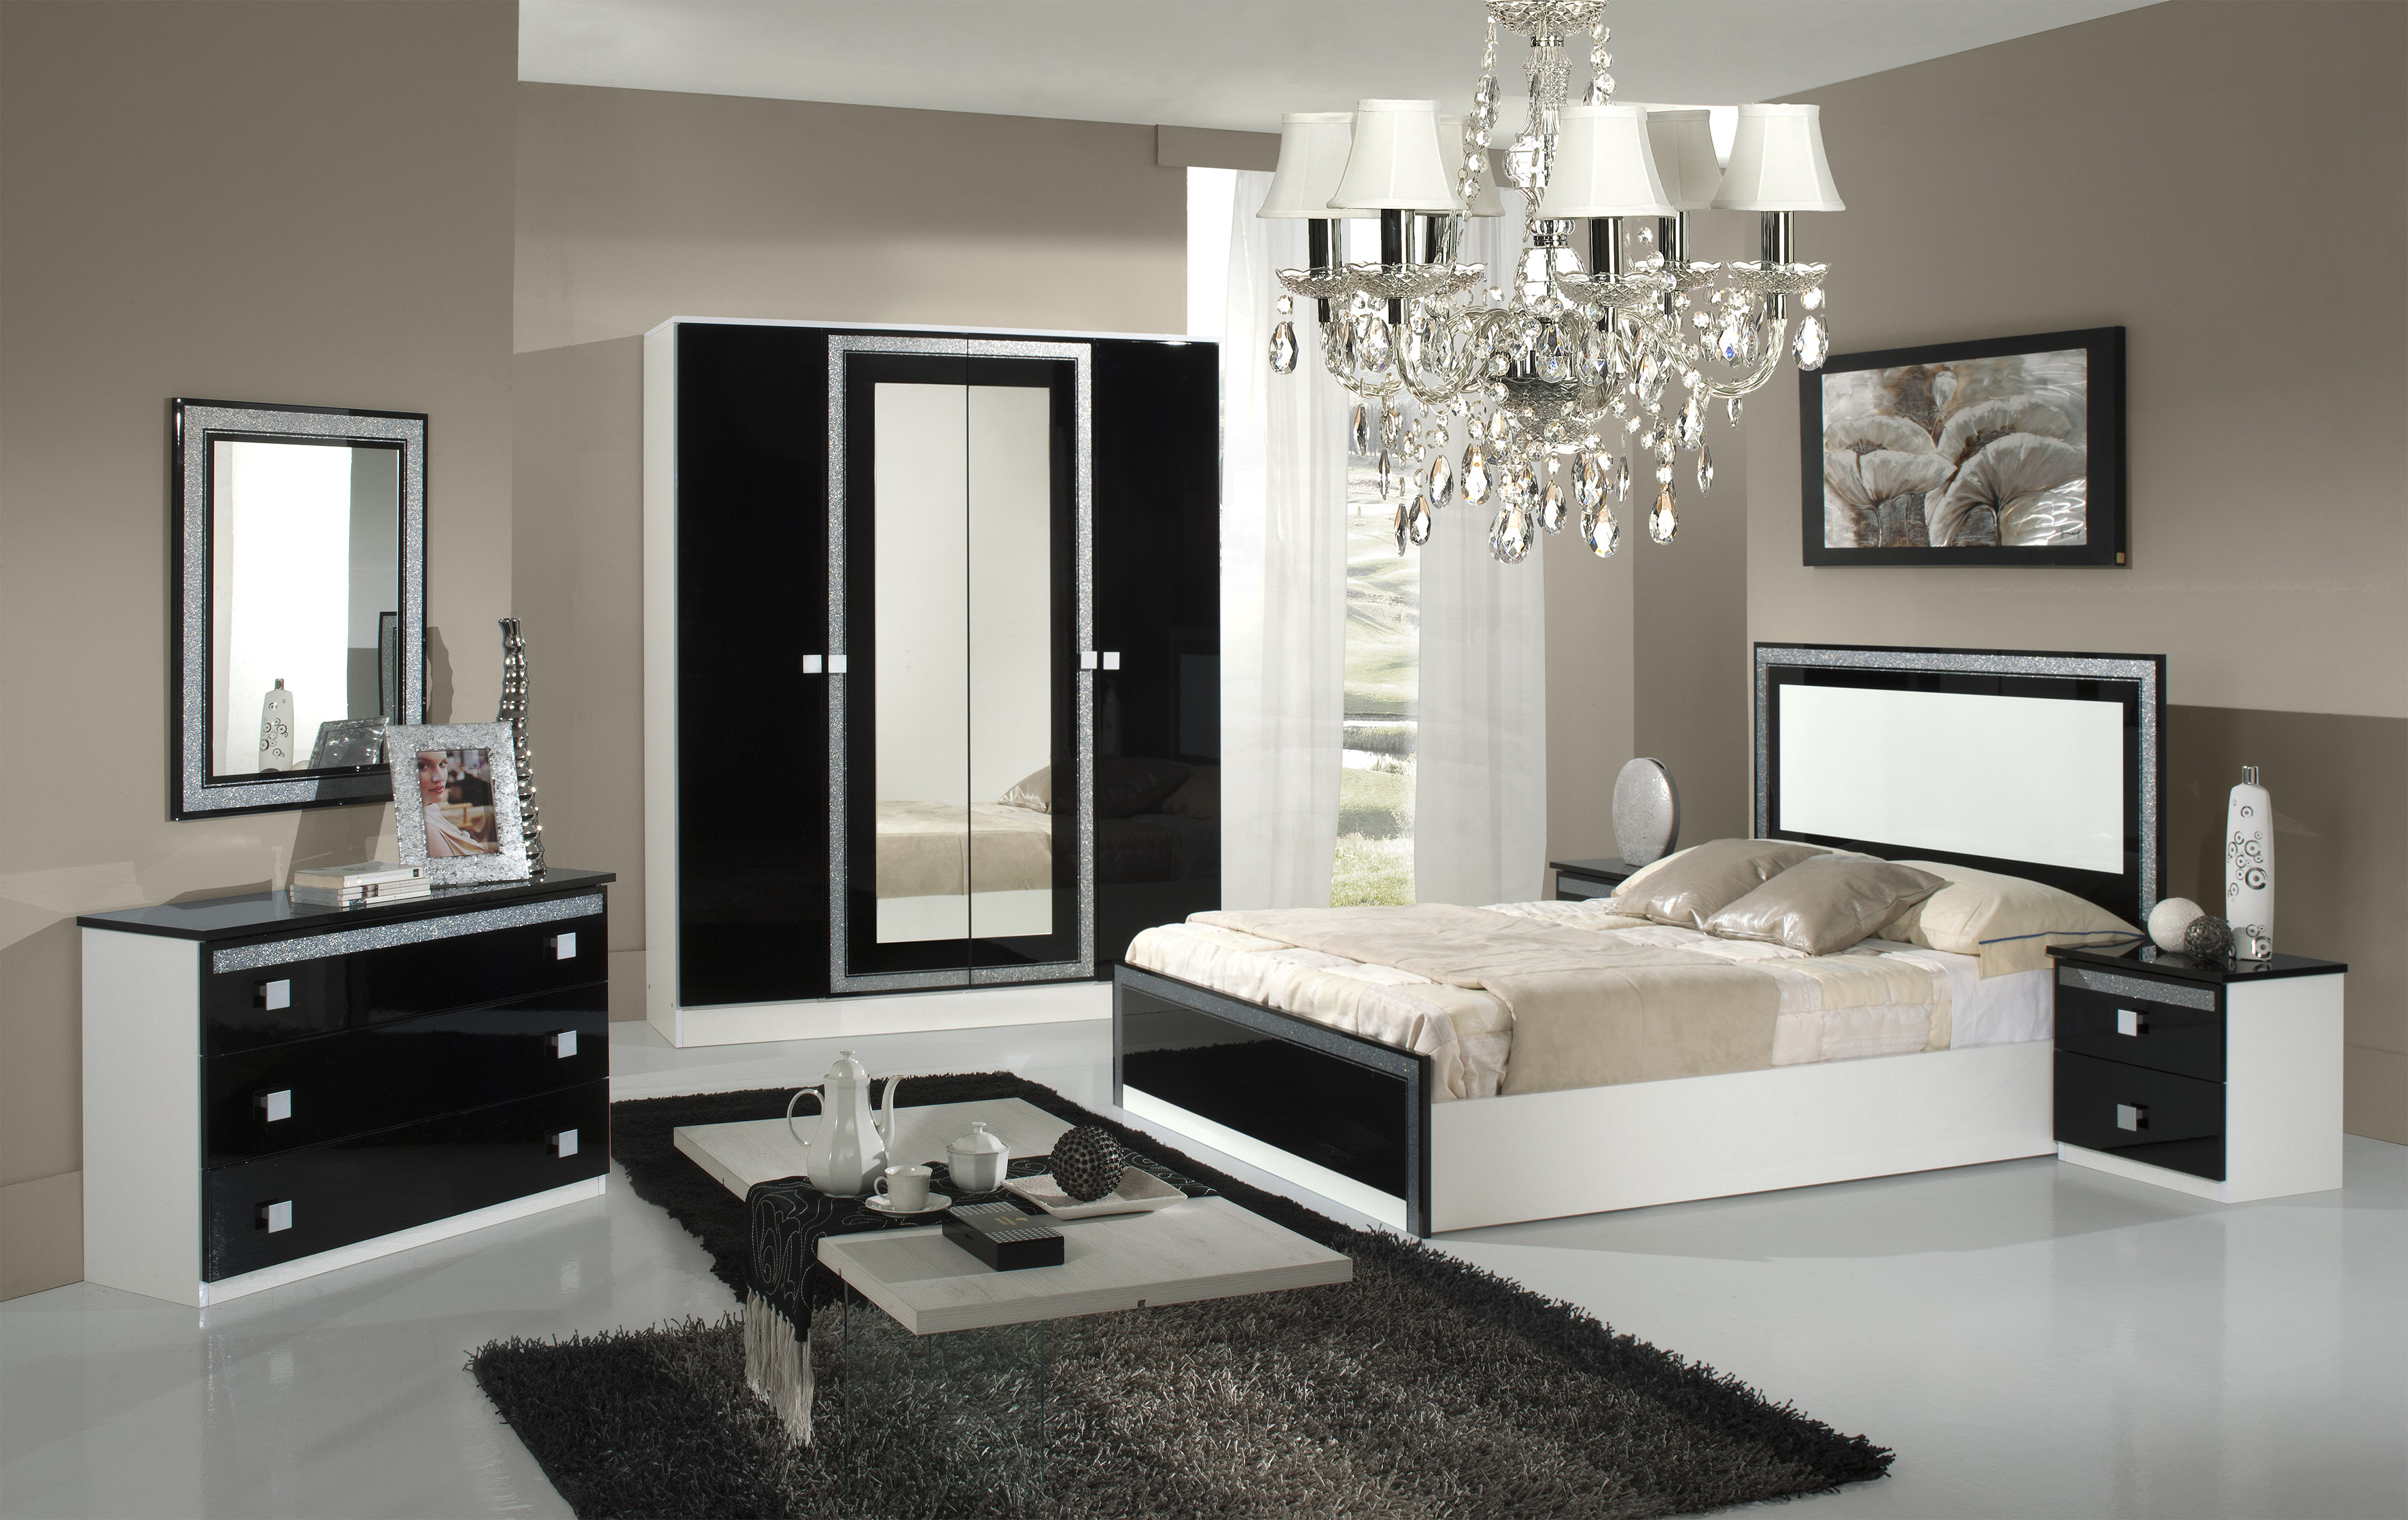 chambre iden noire laqu e nkl meuble wassa et deco. Black Bedroom Furniture Sets. Home Design Ideas